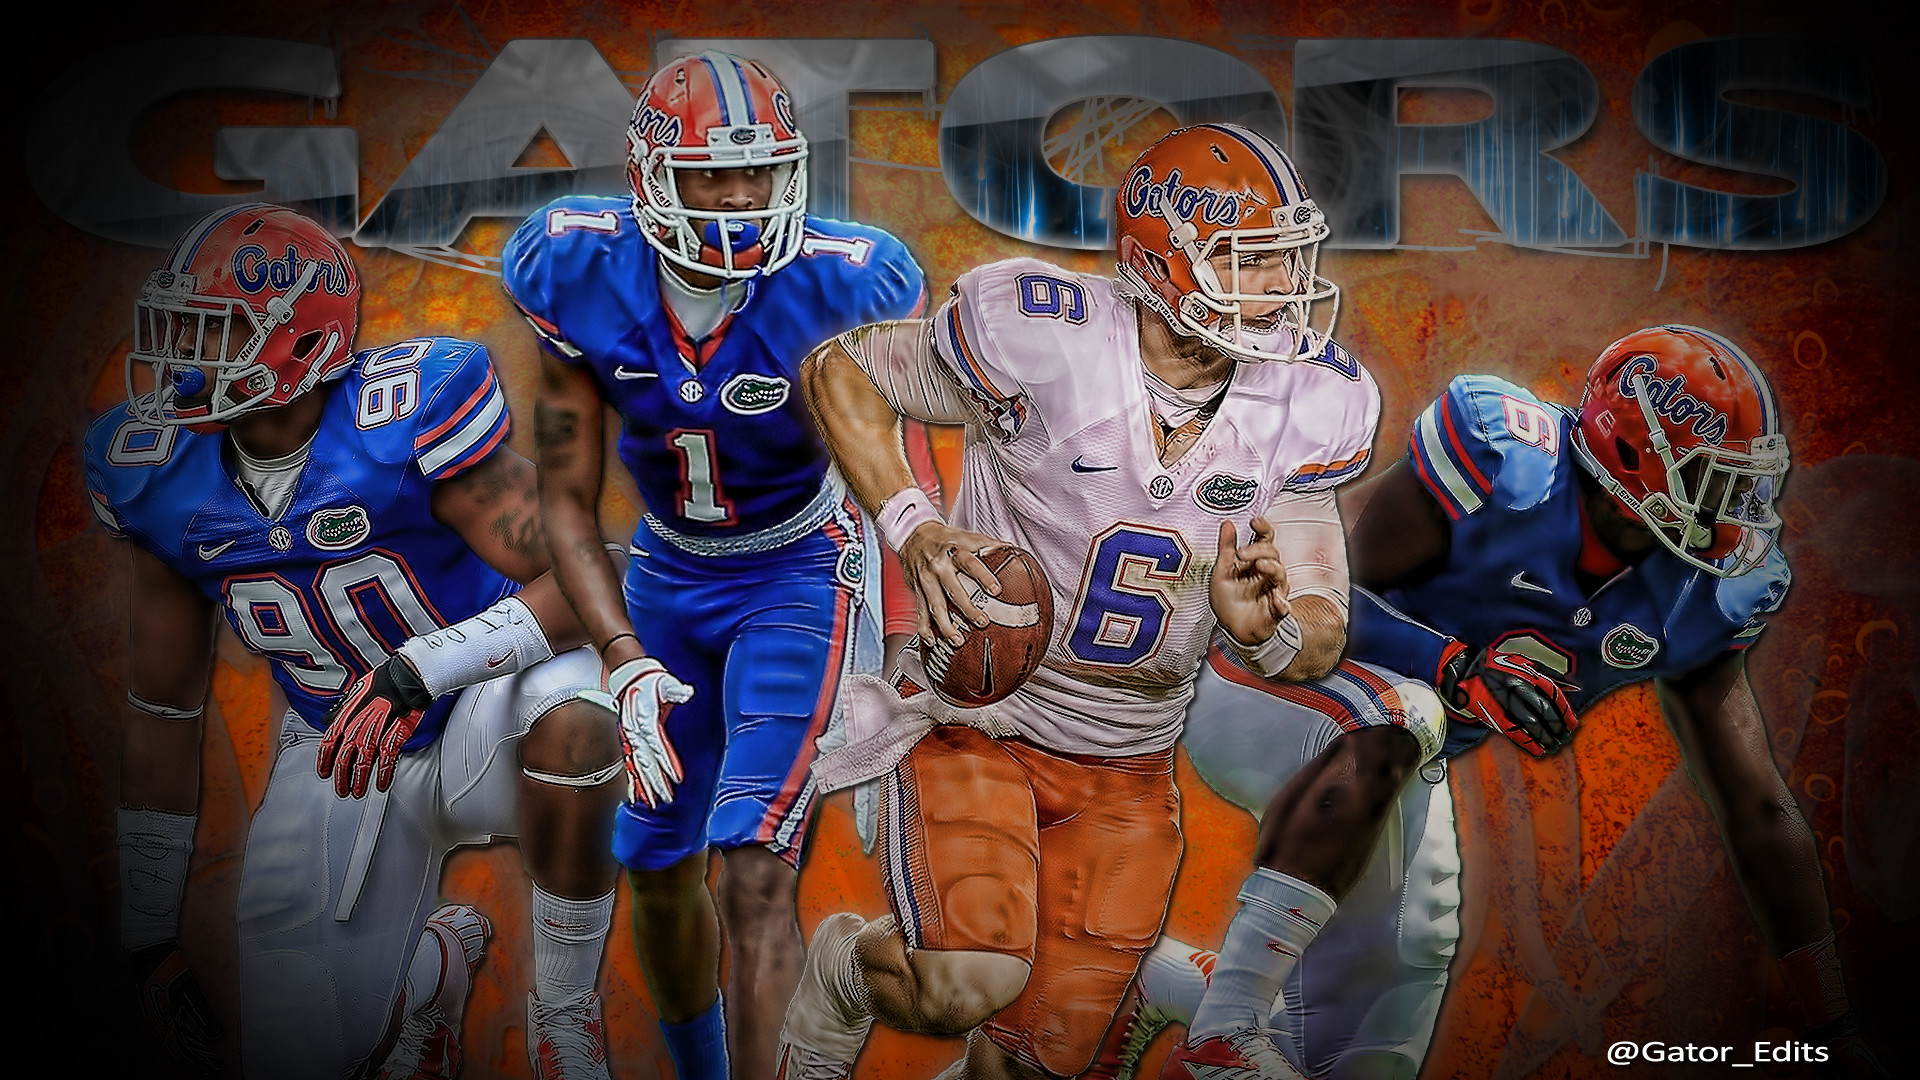 1920x1080 Desktop HD Backgrounds Florida Gators.